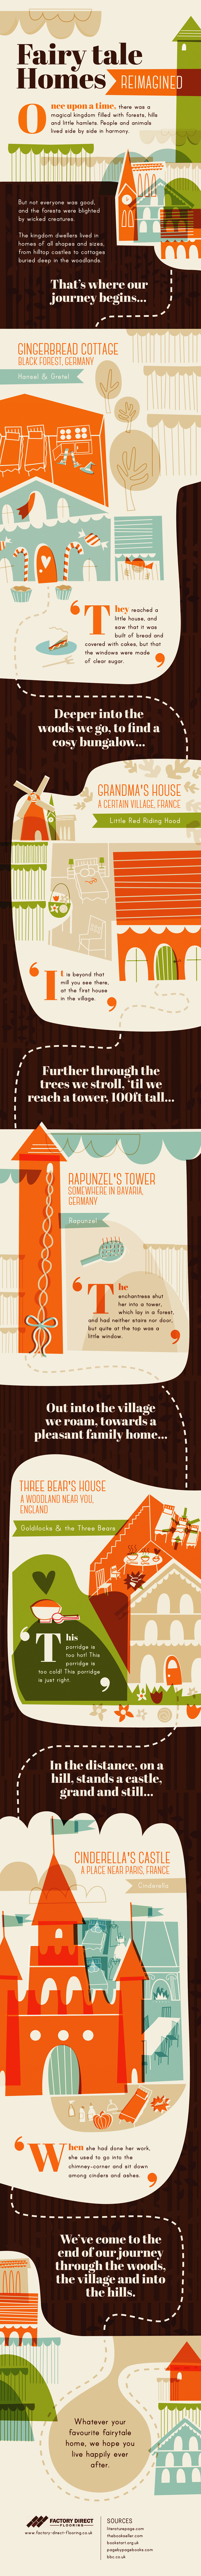 Re-Interpreting Our Favorite Fairy Tale Homes - Infographic